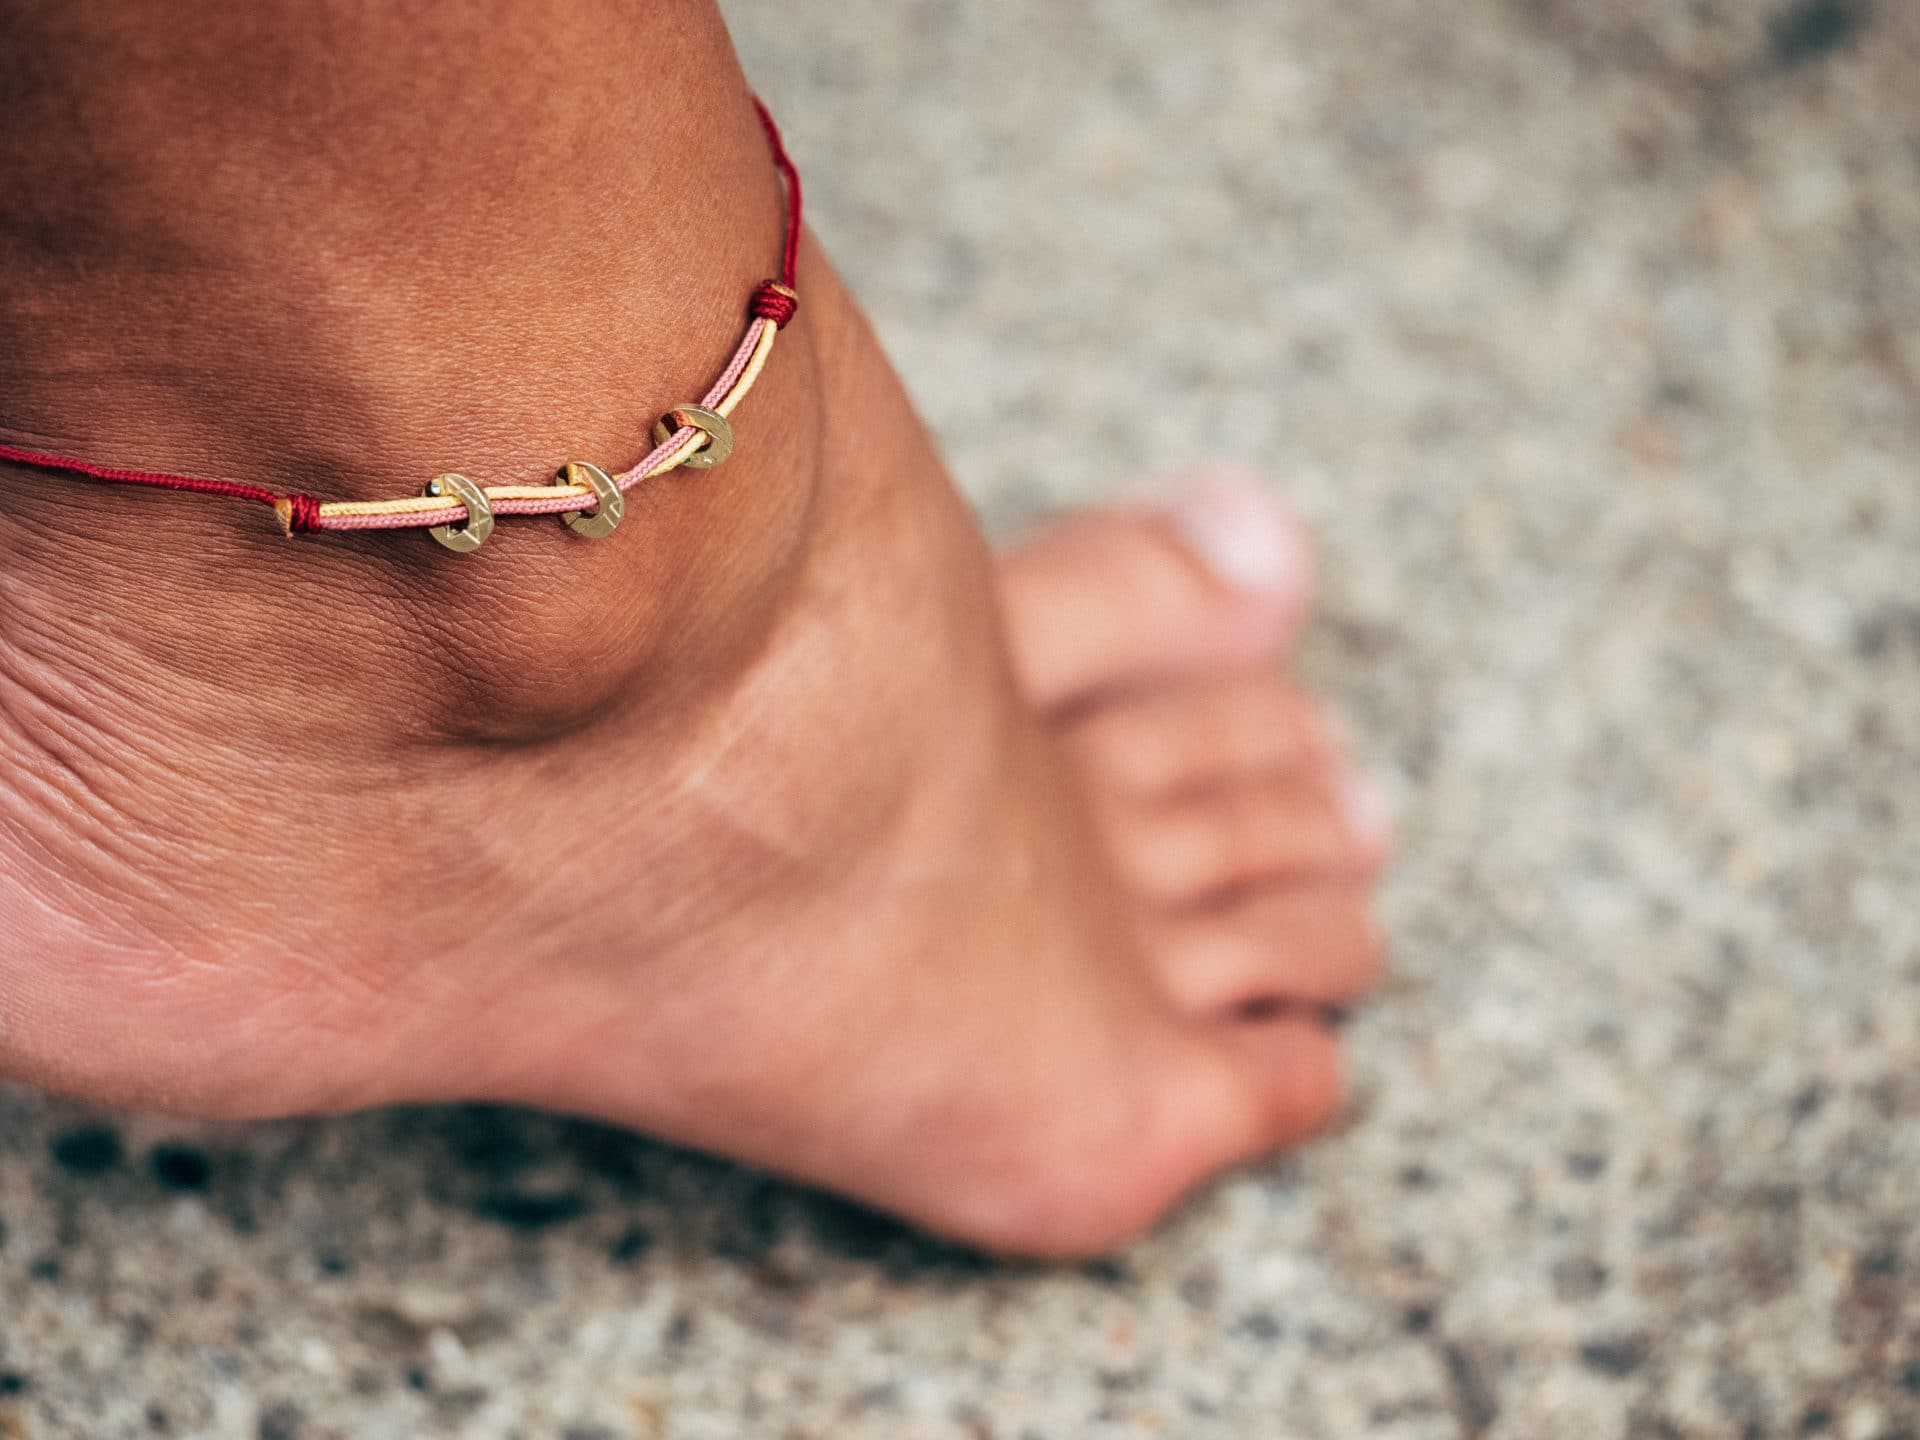 photos allieberdene ak b allison flickr anklet by white locking